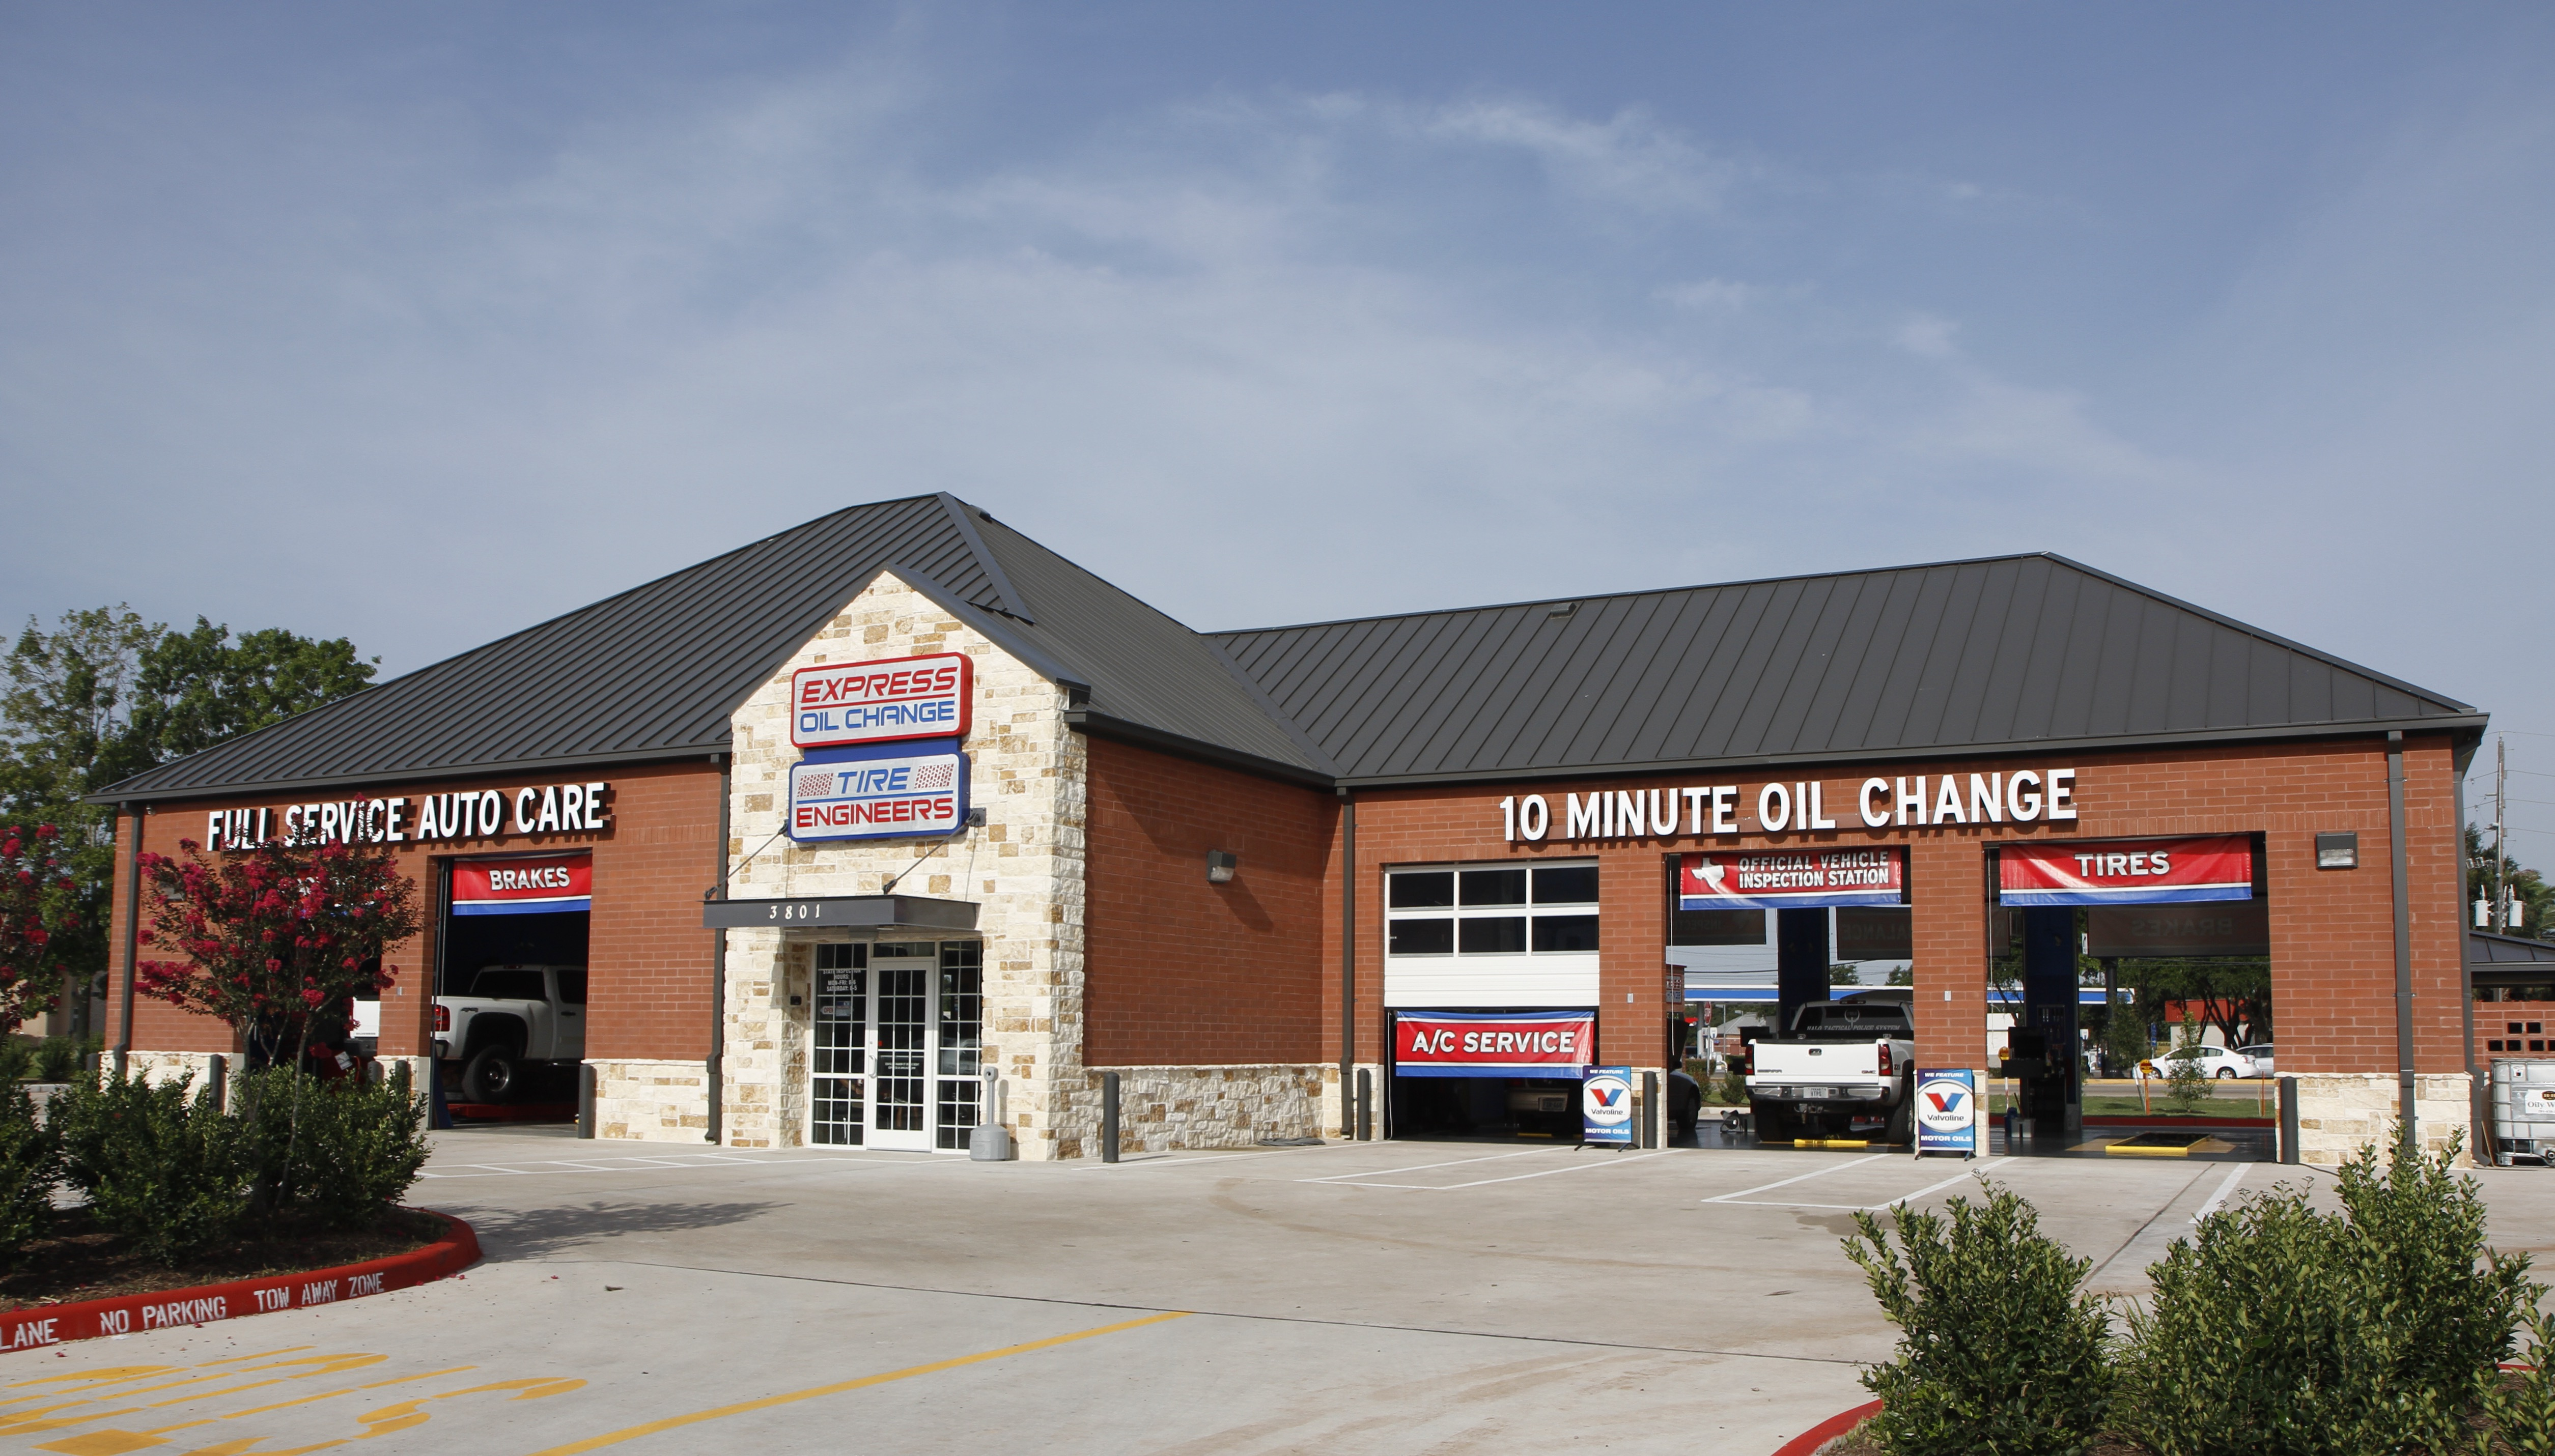 Express Oil Change & Tire Engineers at Missouri City, TX store